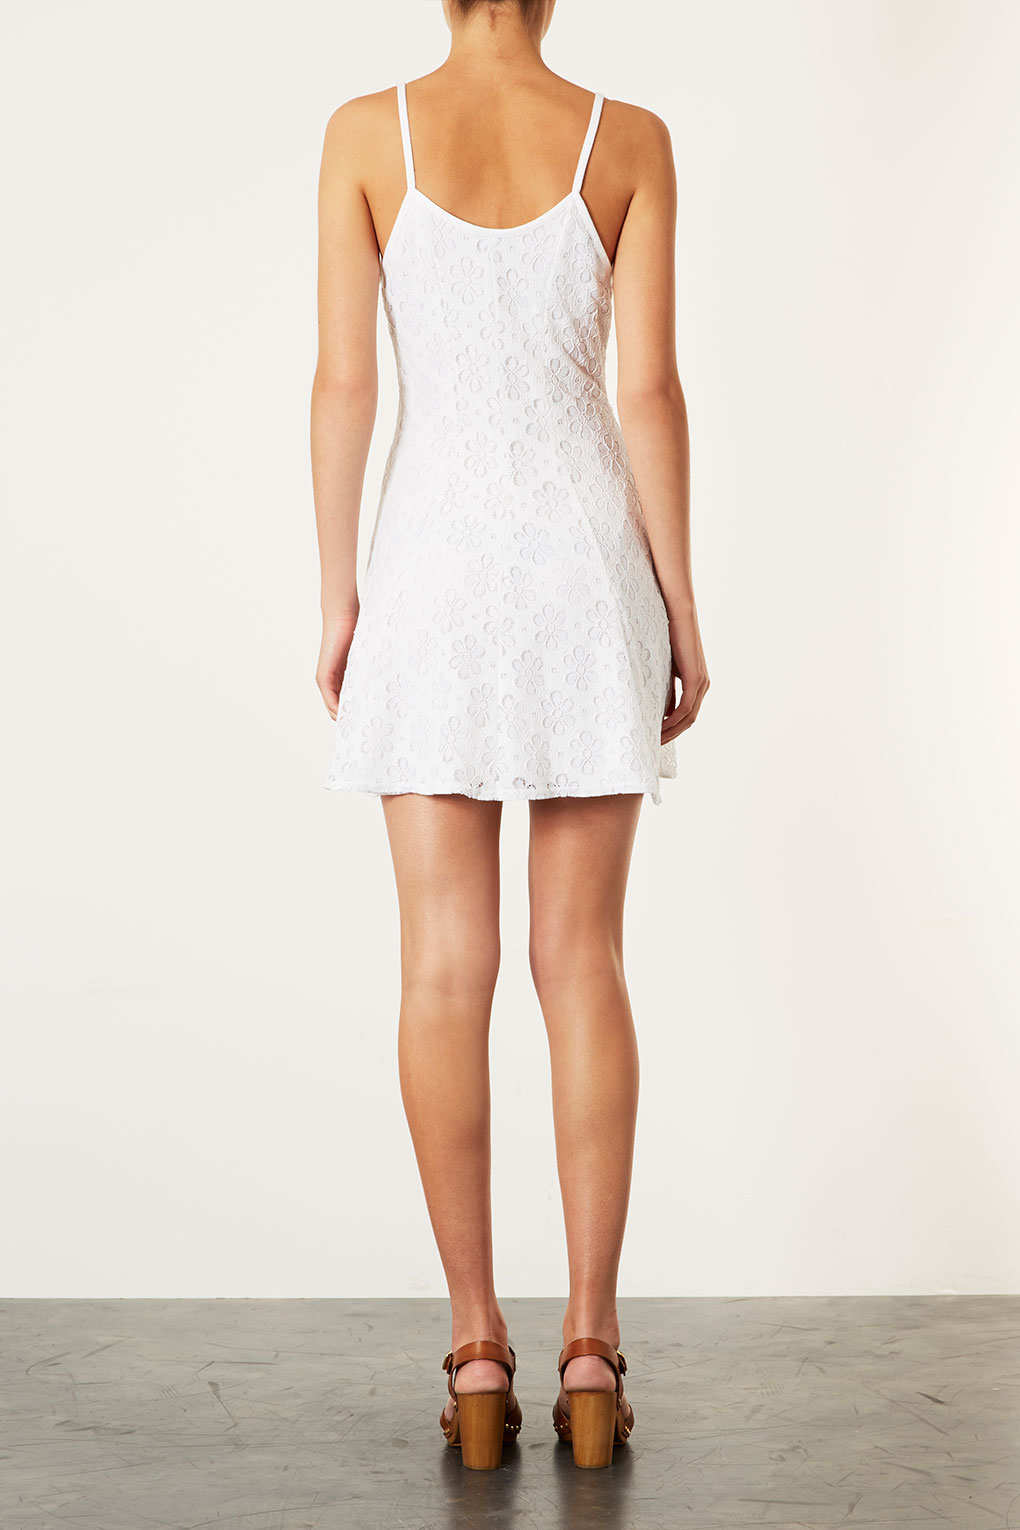 Lyst Topshop Strappy Lace Dress In White